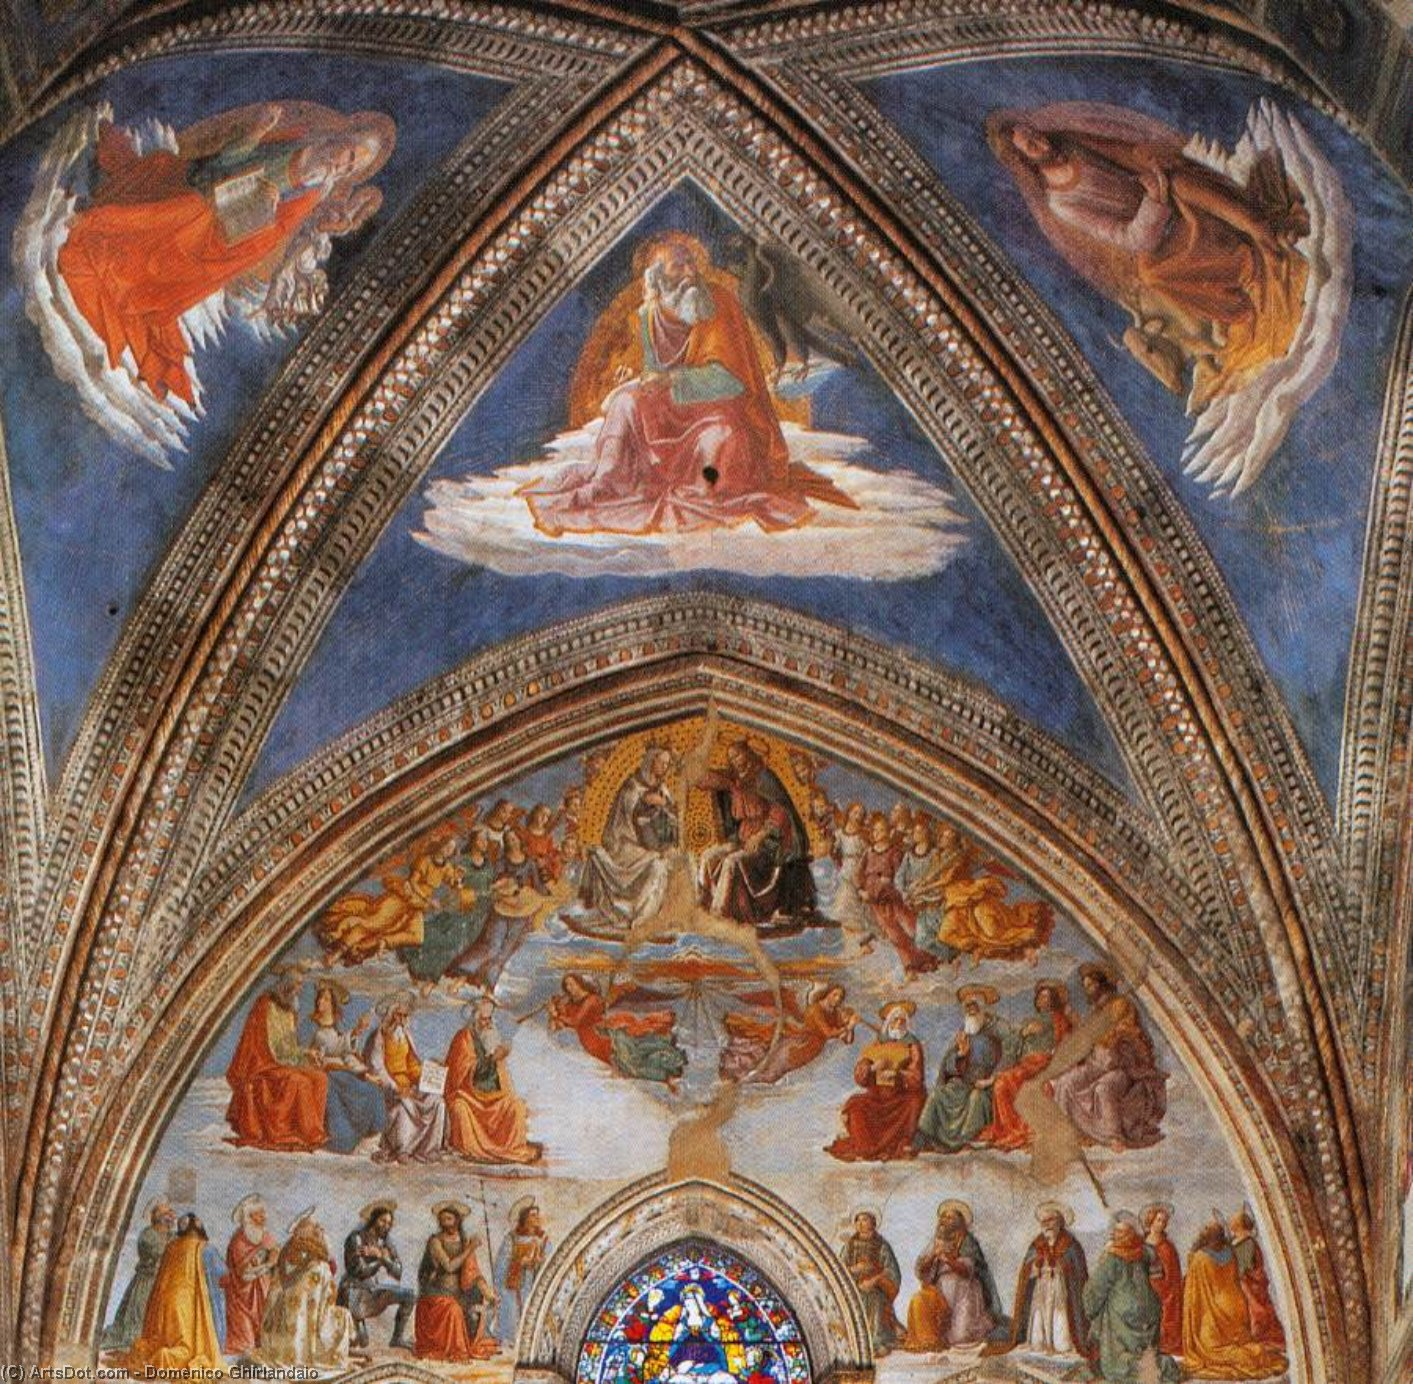 View of the Tornabuoni Chapel (detail), Frescoes by Domenico Ghirlandaio (1449-1494, Italy)